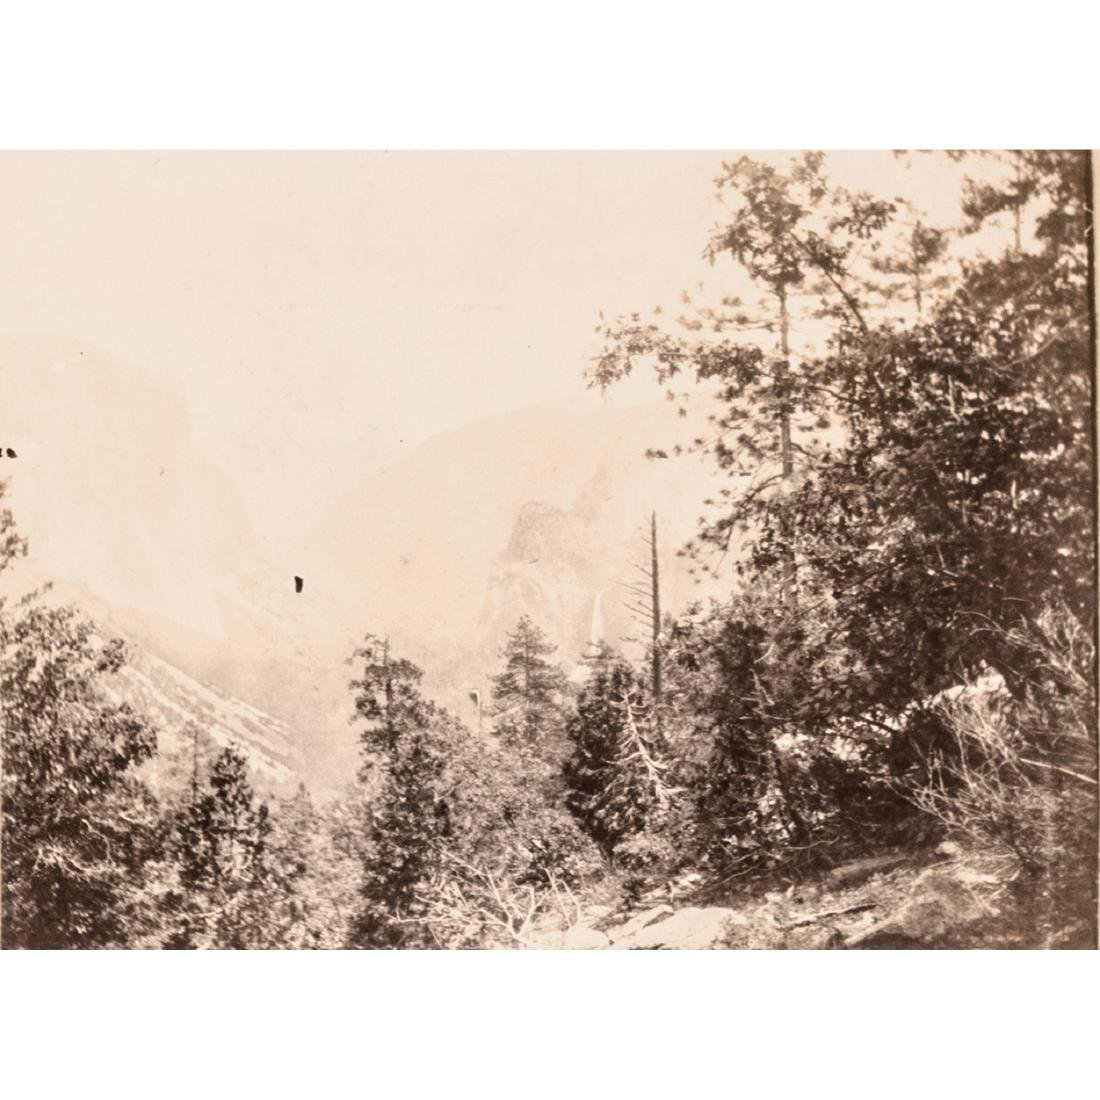 1882 Album 25 Historical Yosemite Calif. Photos - 10